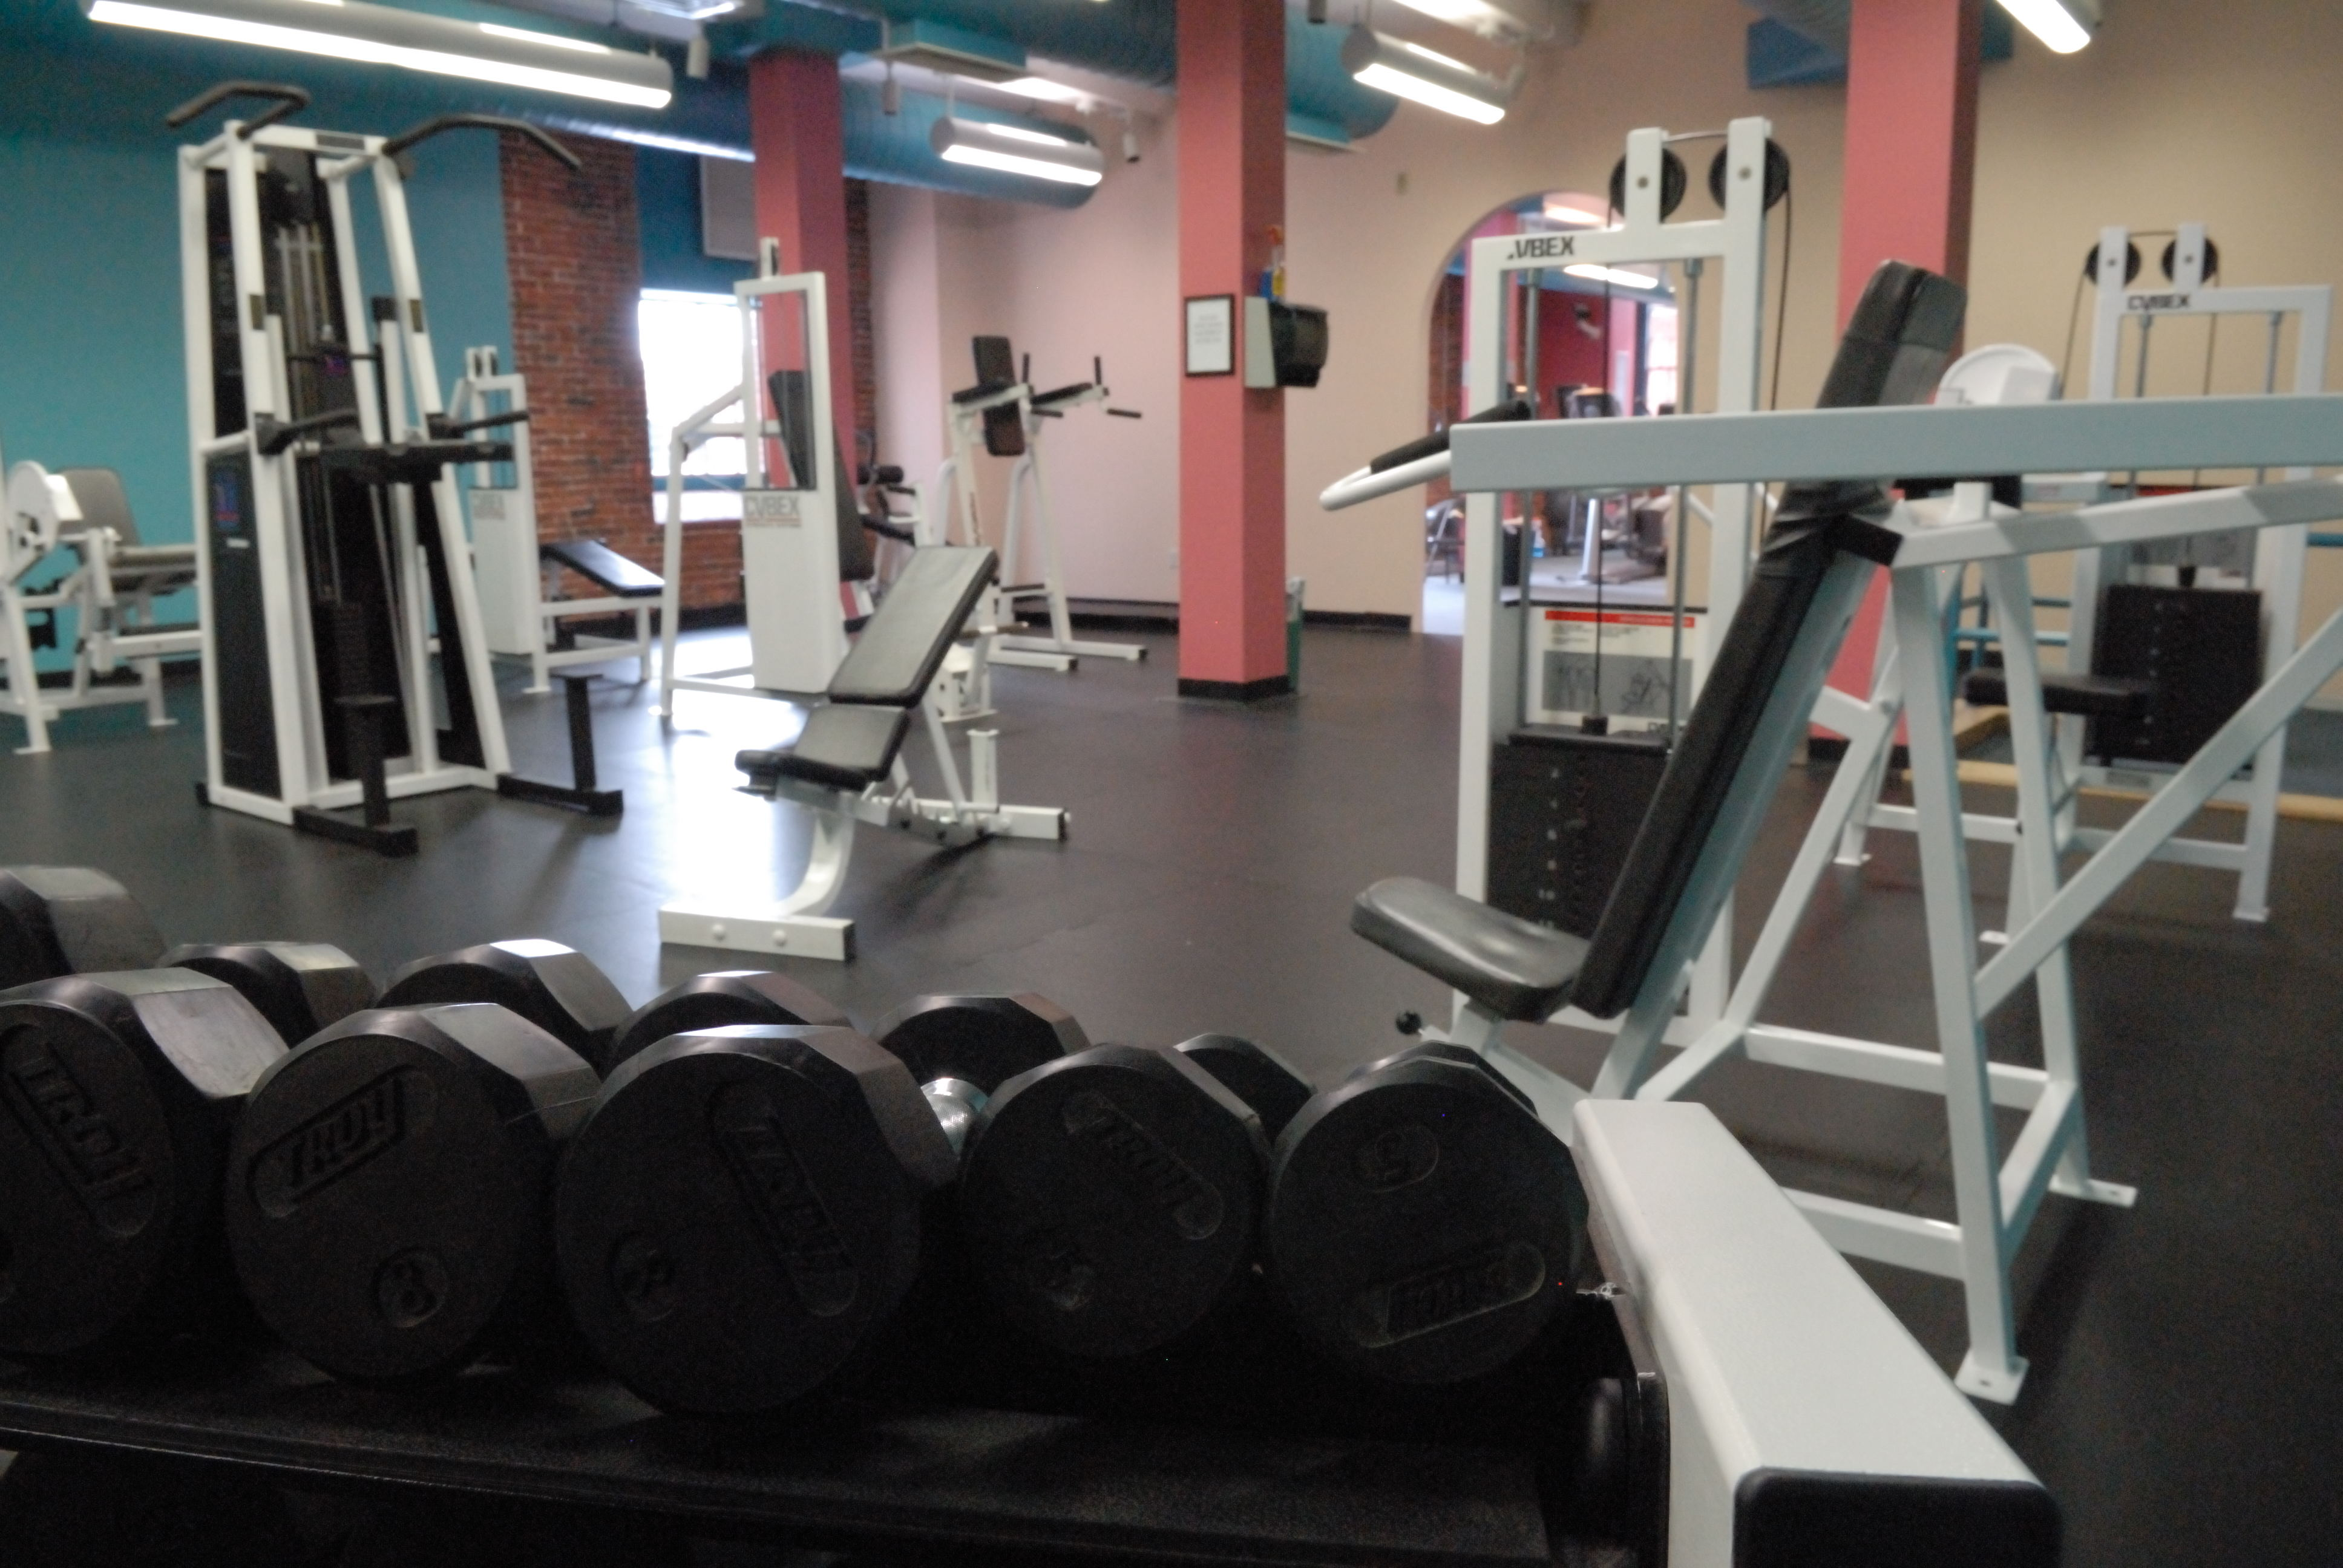 Health Club Weight Facility: From free weights to Nautilus exercise stations, press on!